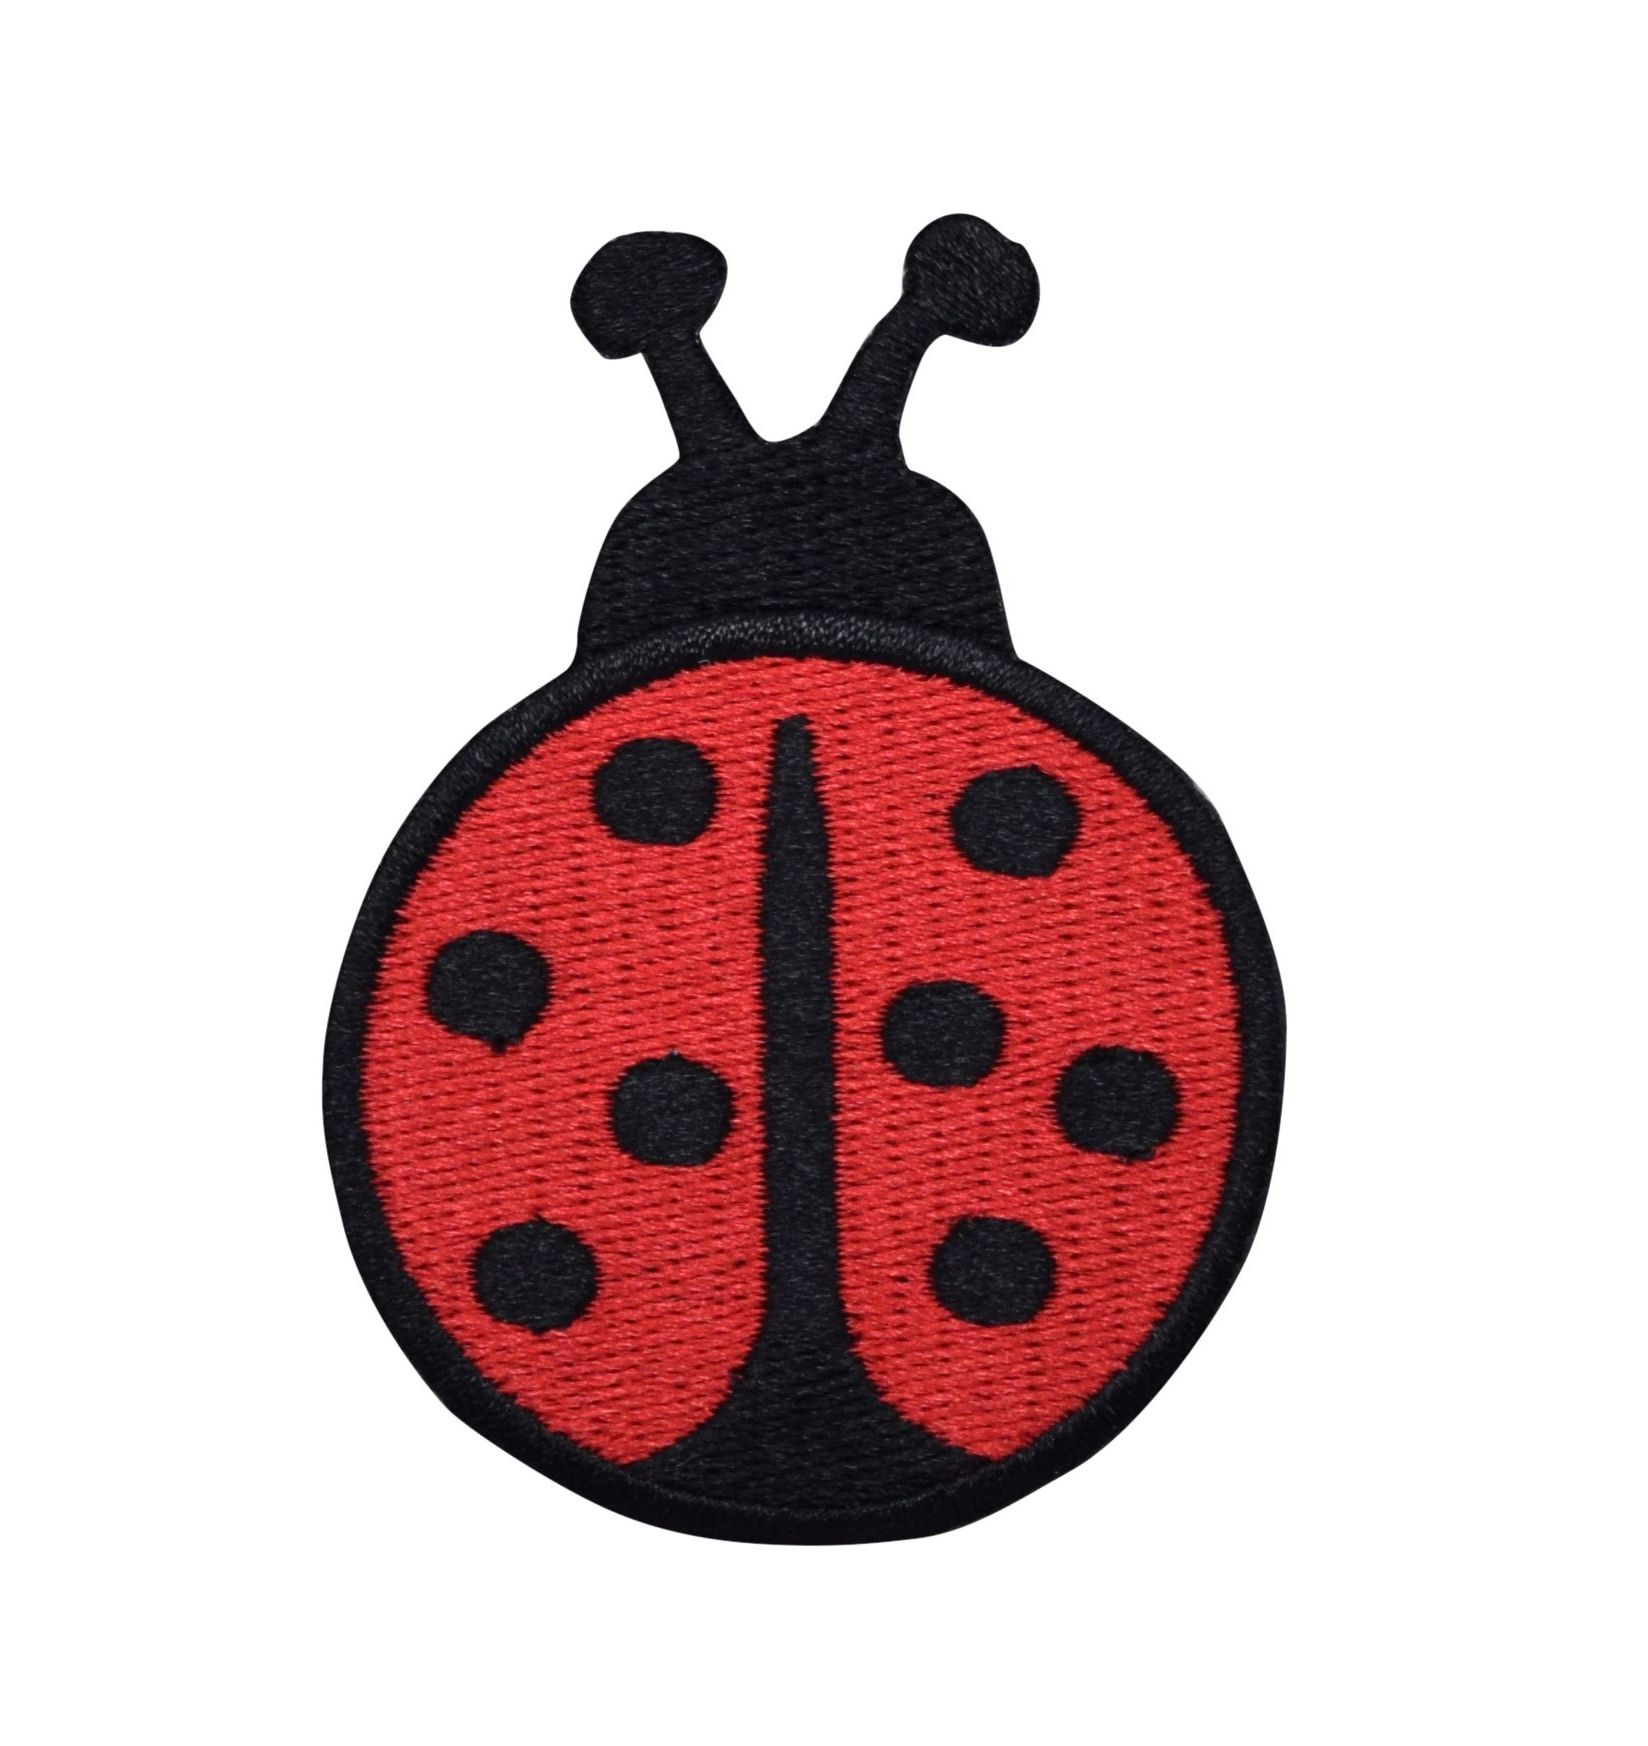 Large Red/Black Ladybug - Iron on Applique/Embroidered Patch